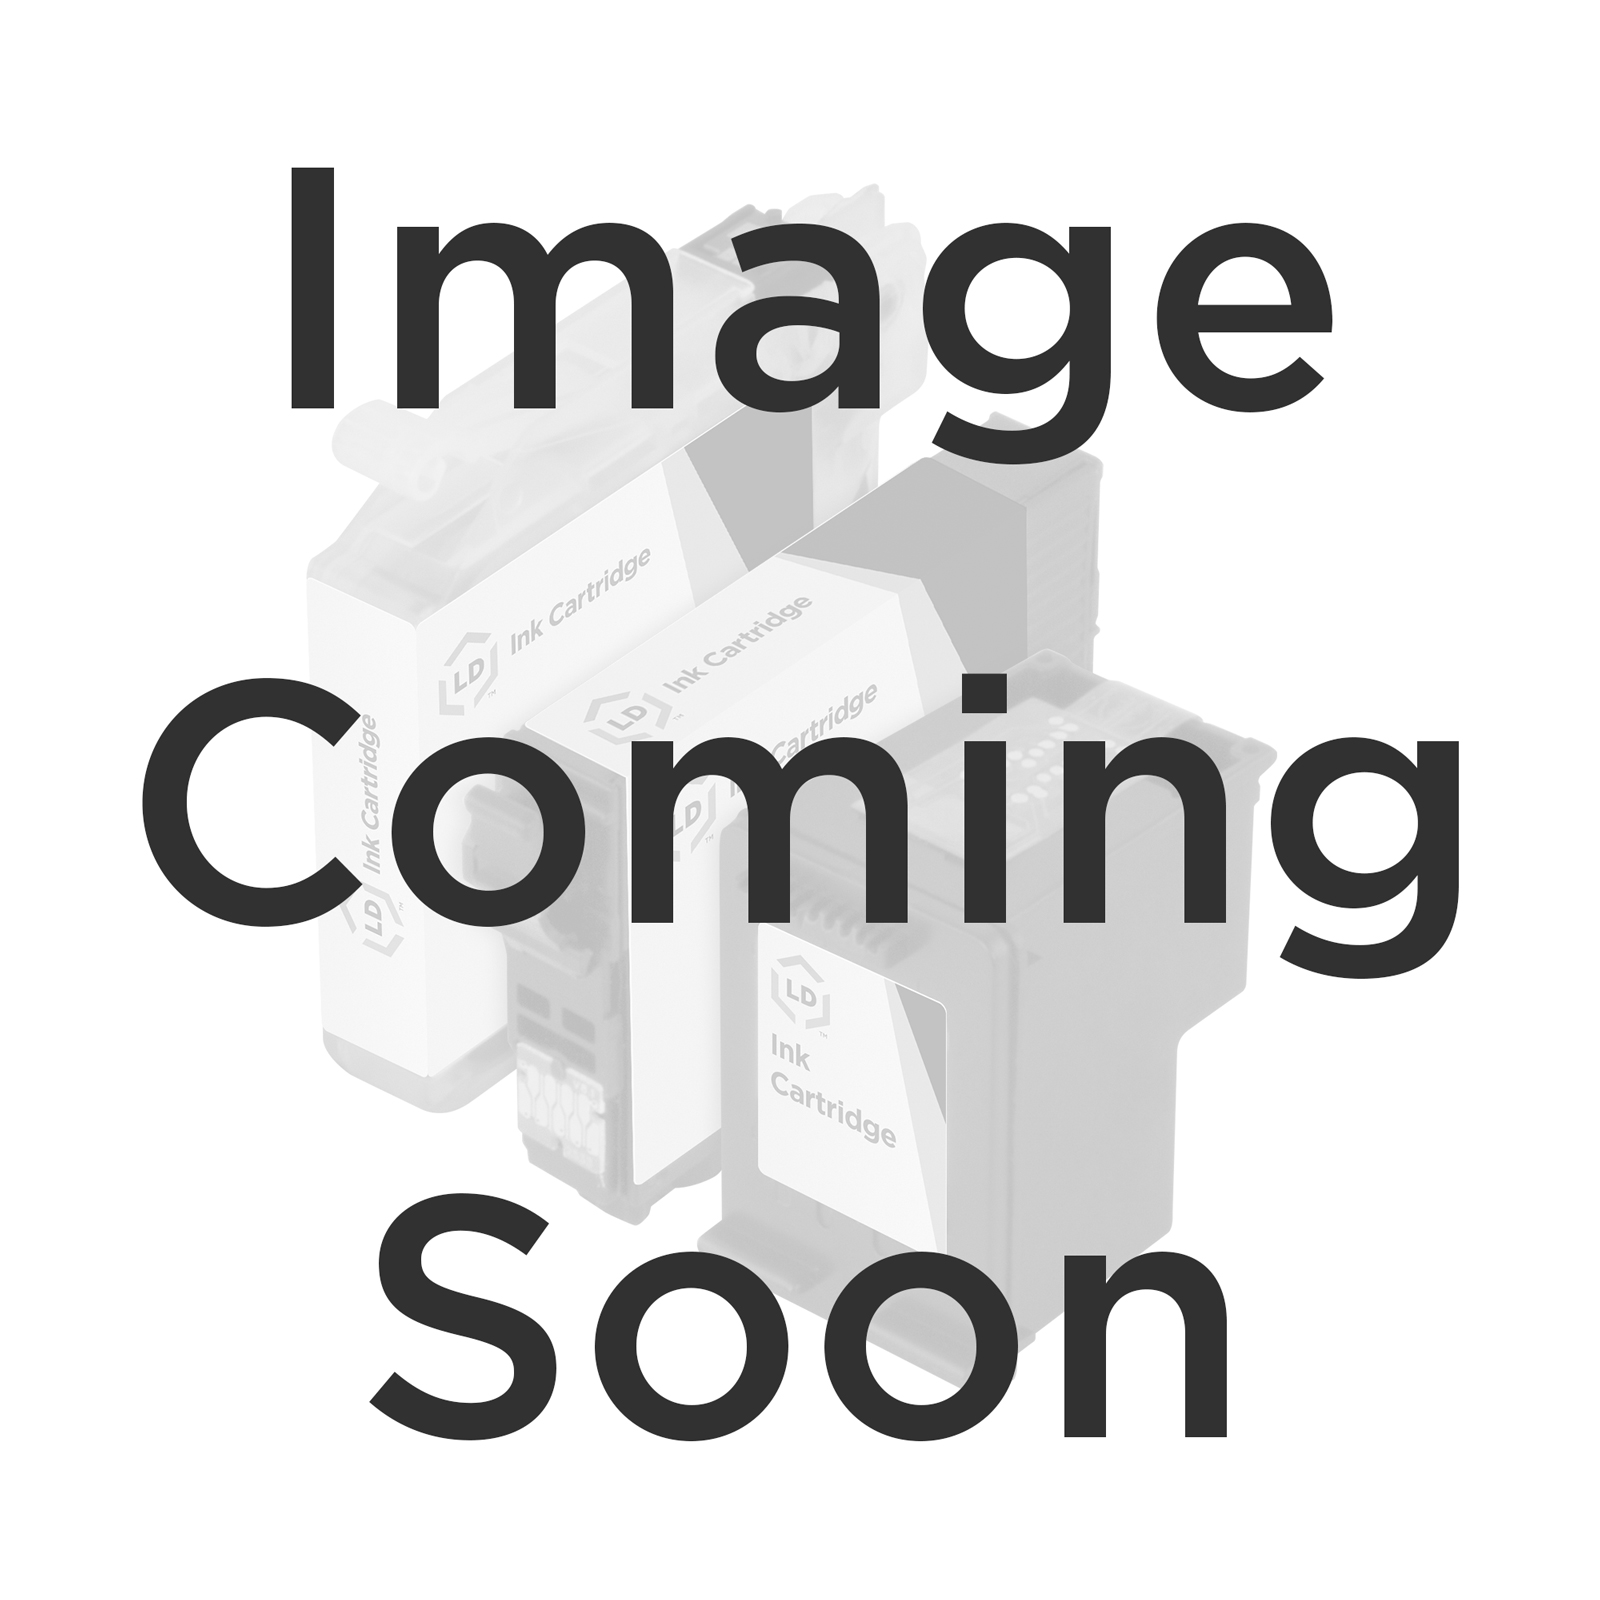 Carson-Dellosa Grade 2 Applying the Standards STEM Workbk Education Printed Book for Science